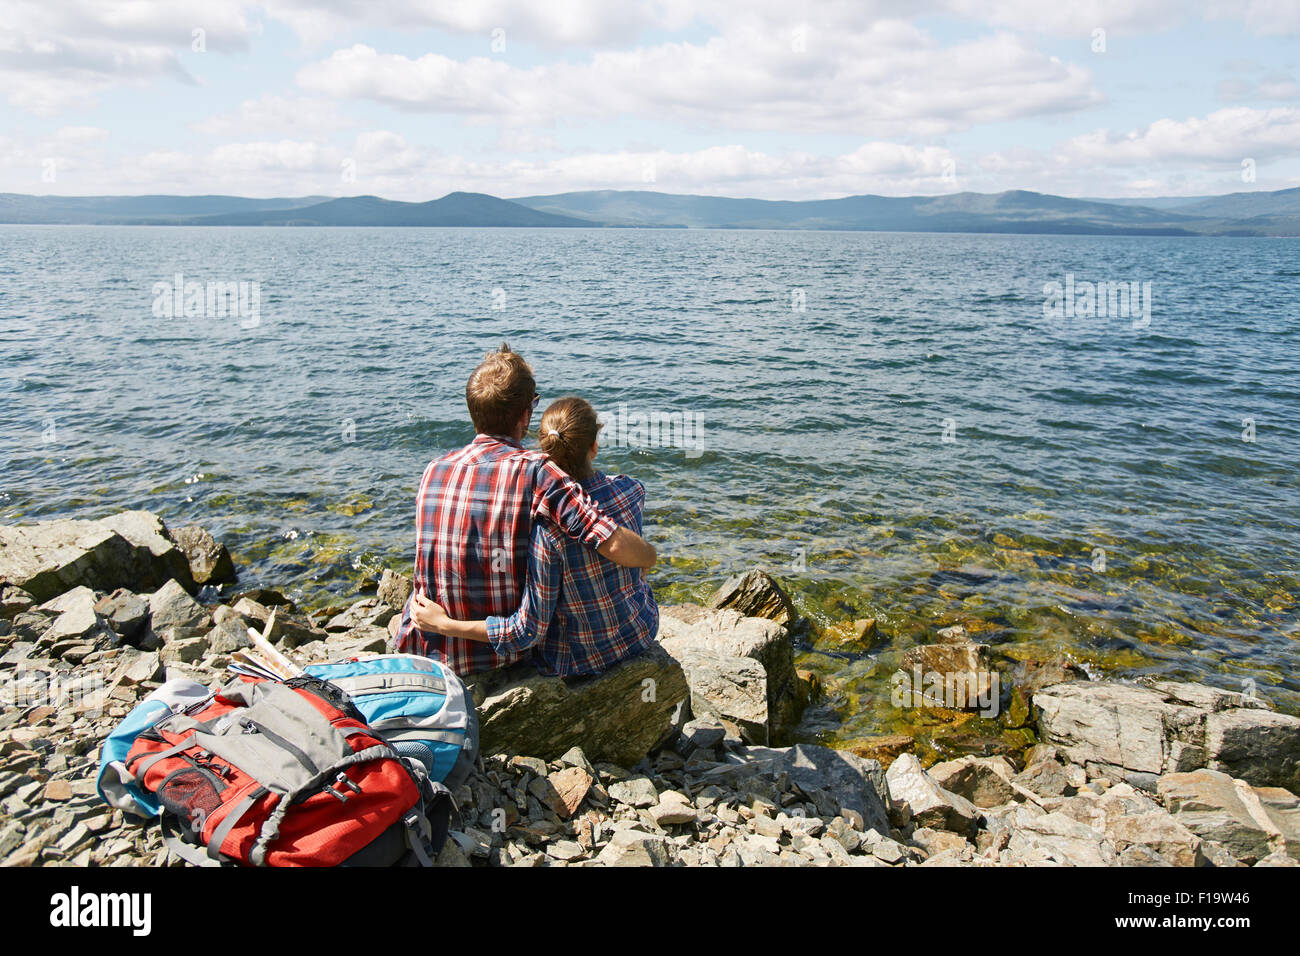 Rear view of amorous romantic couple in embrace sitting by the sea - Stock Image